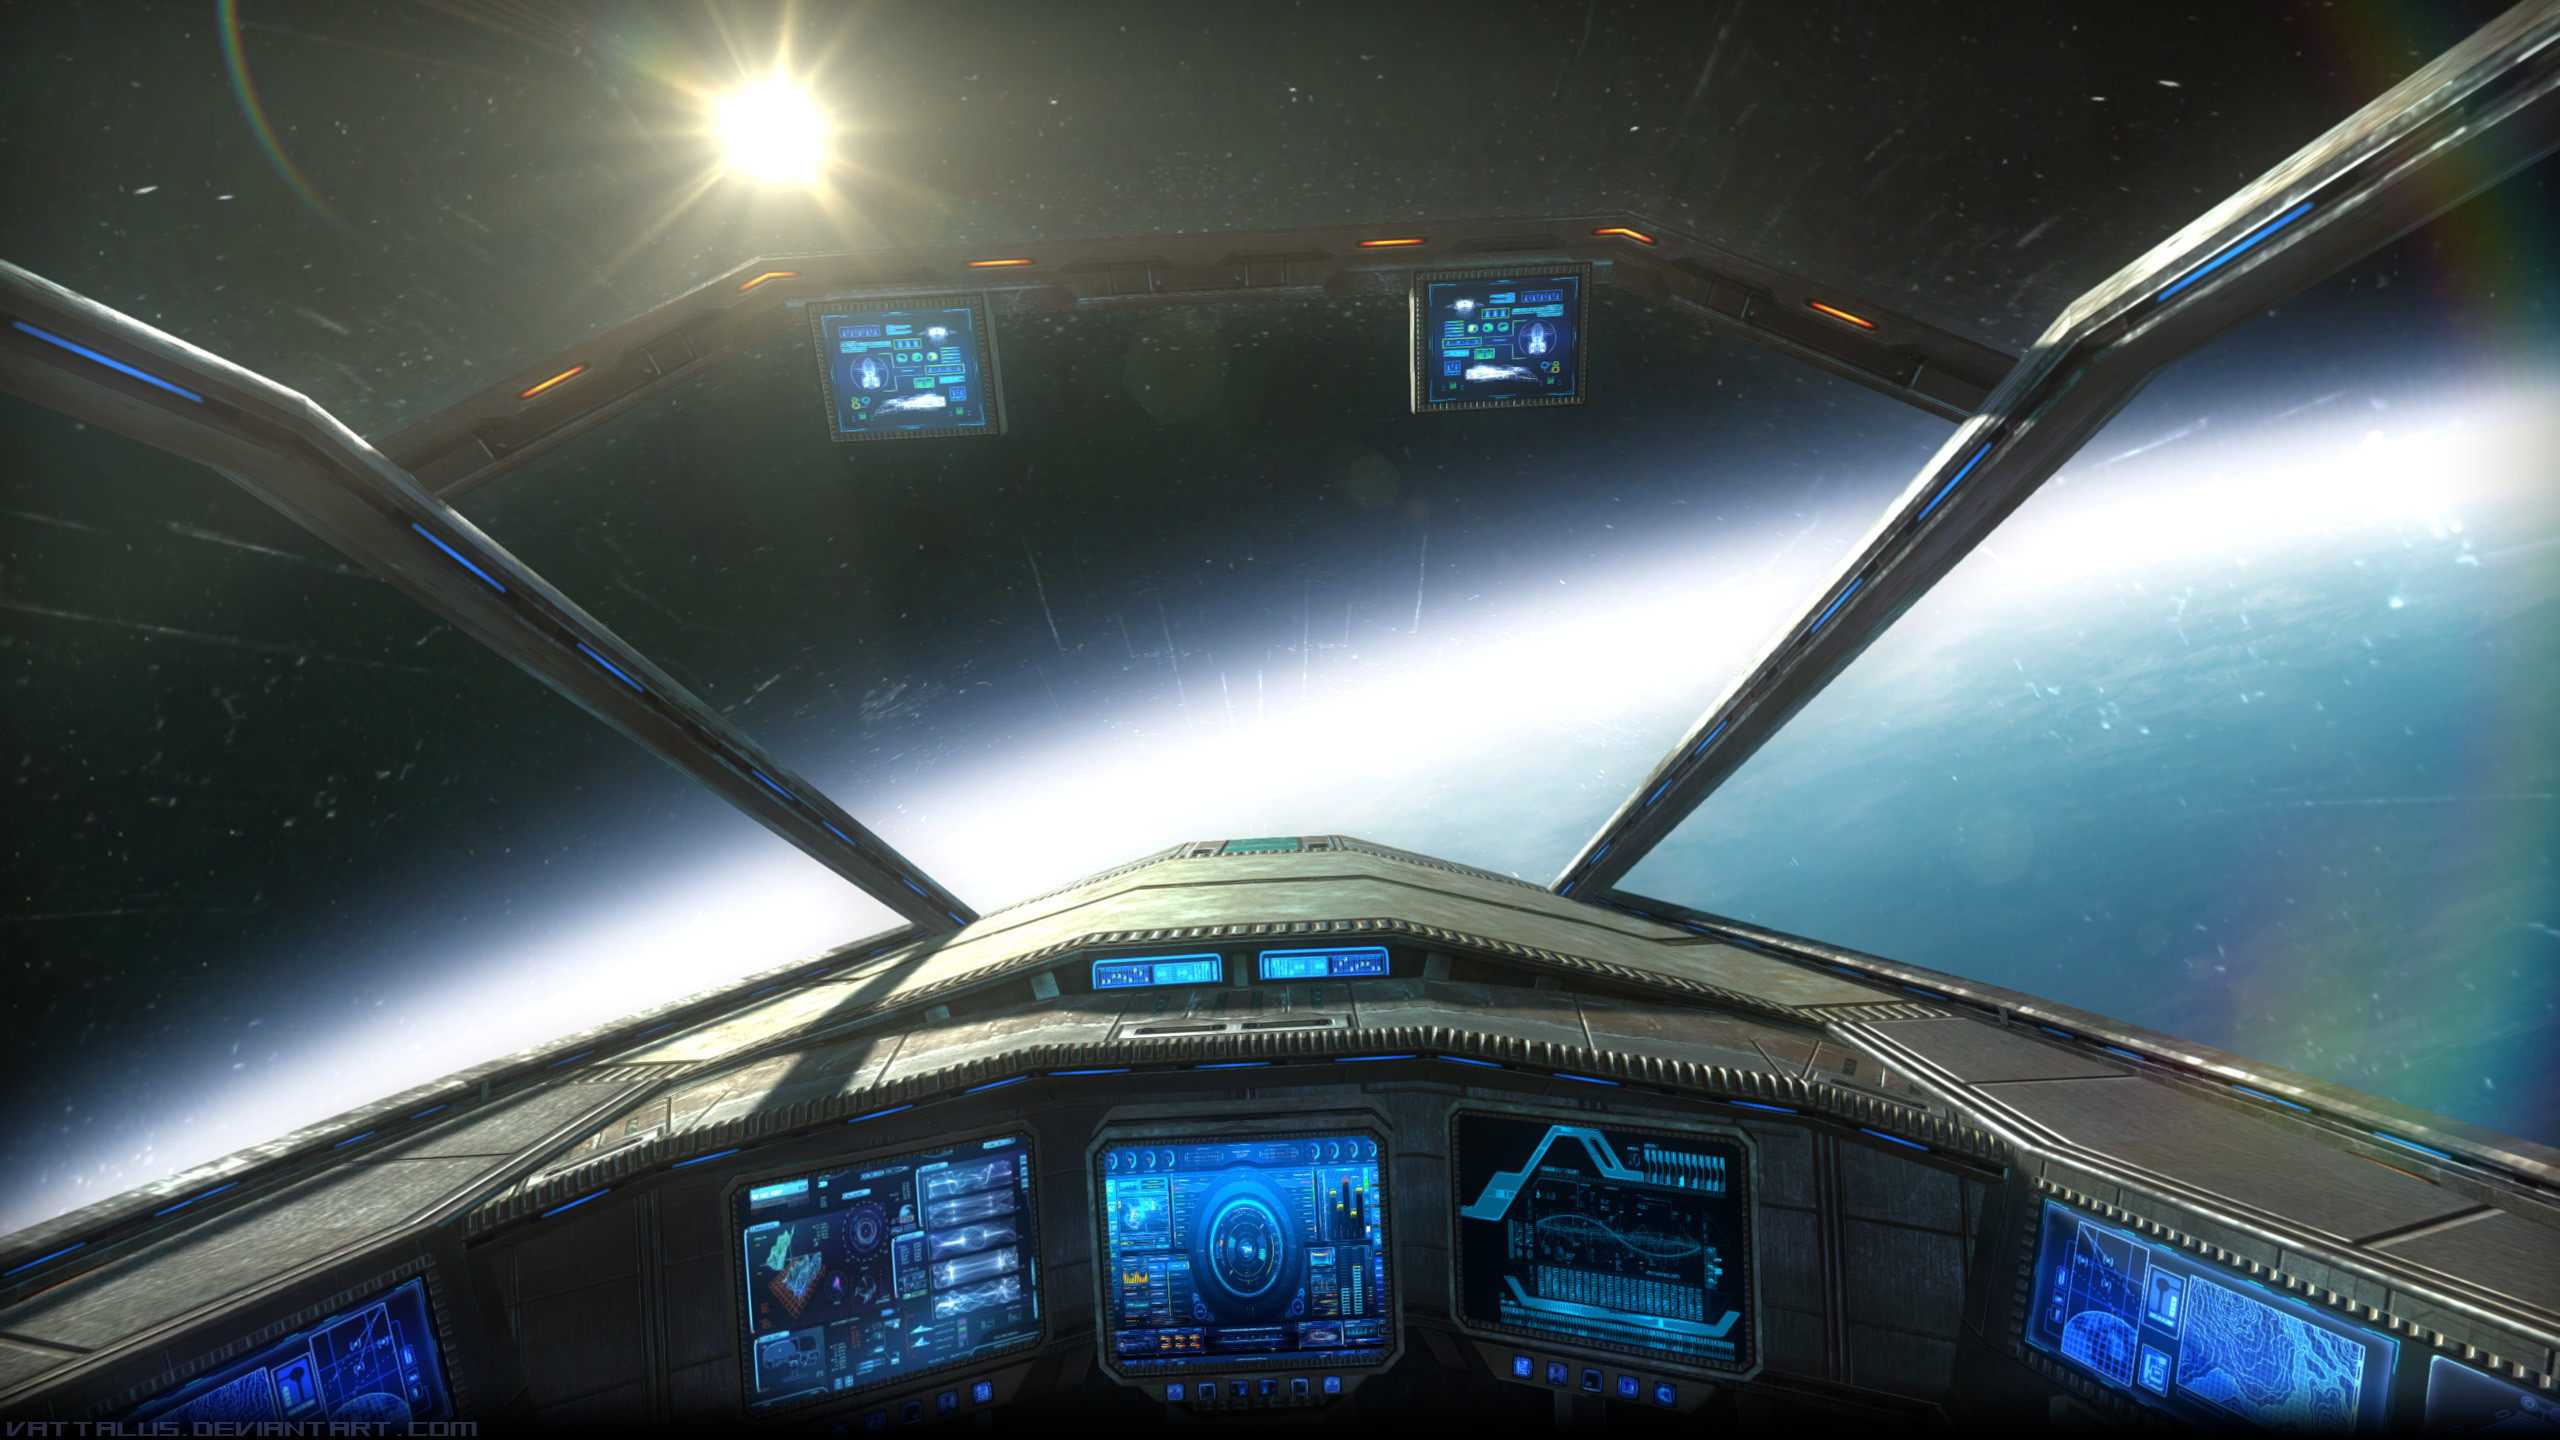 2560x1440 Fantasy Wallpaper, sci-fi, spaceship, space, panel - HD Wallpapers .